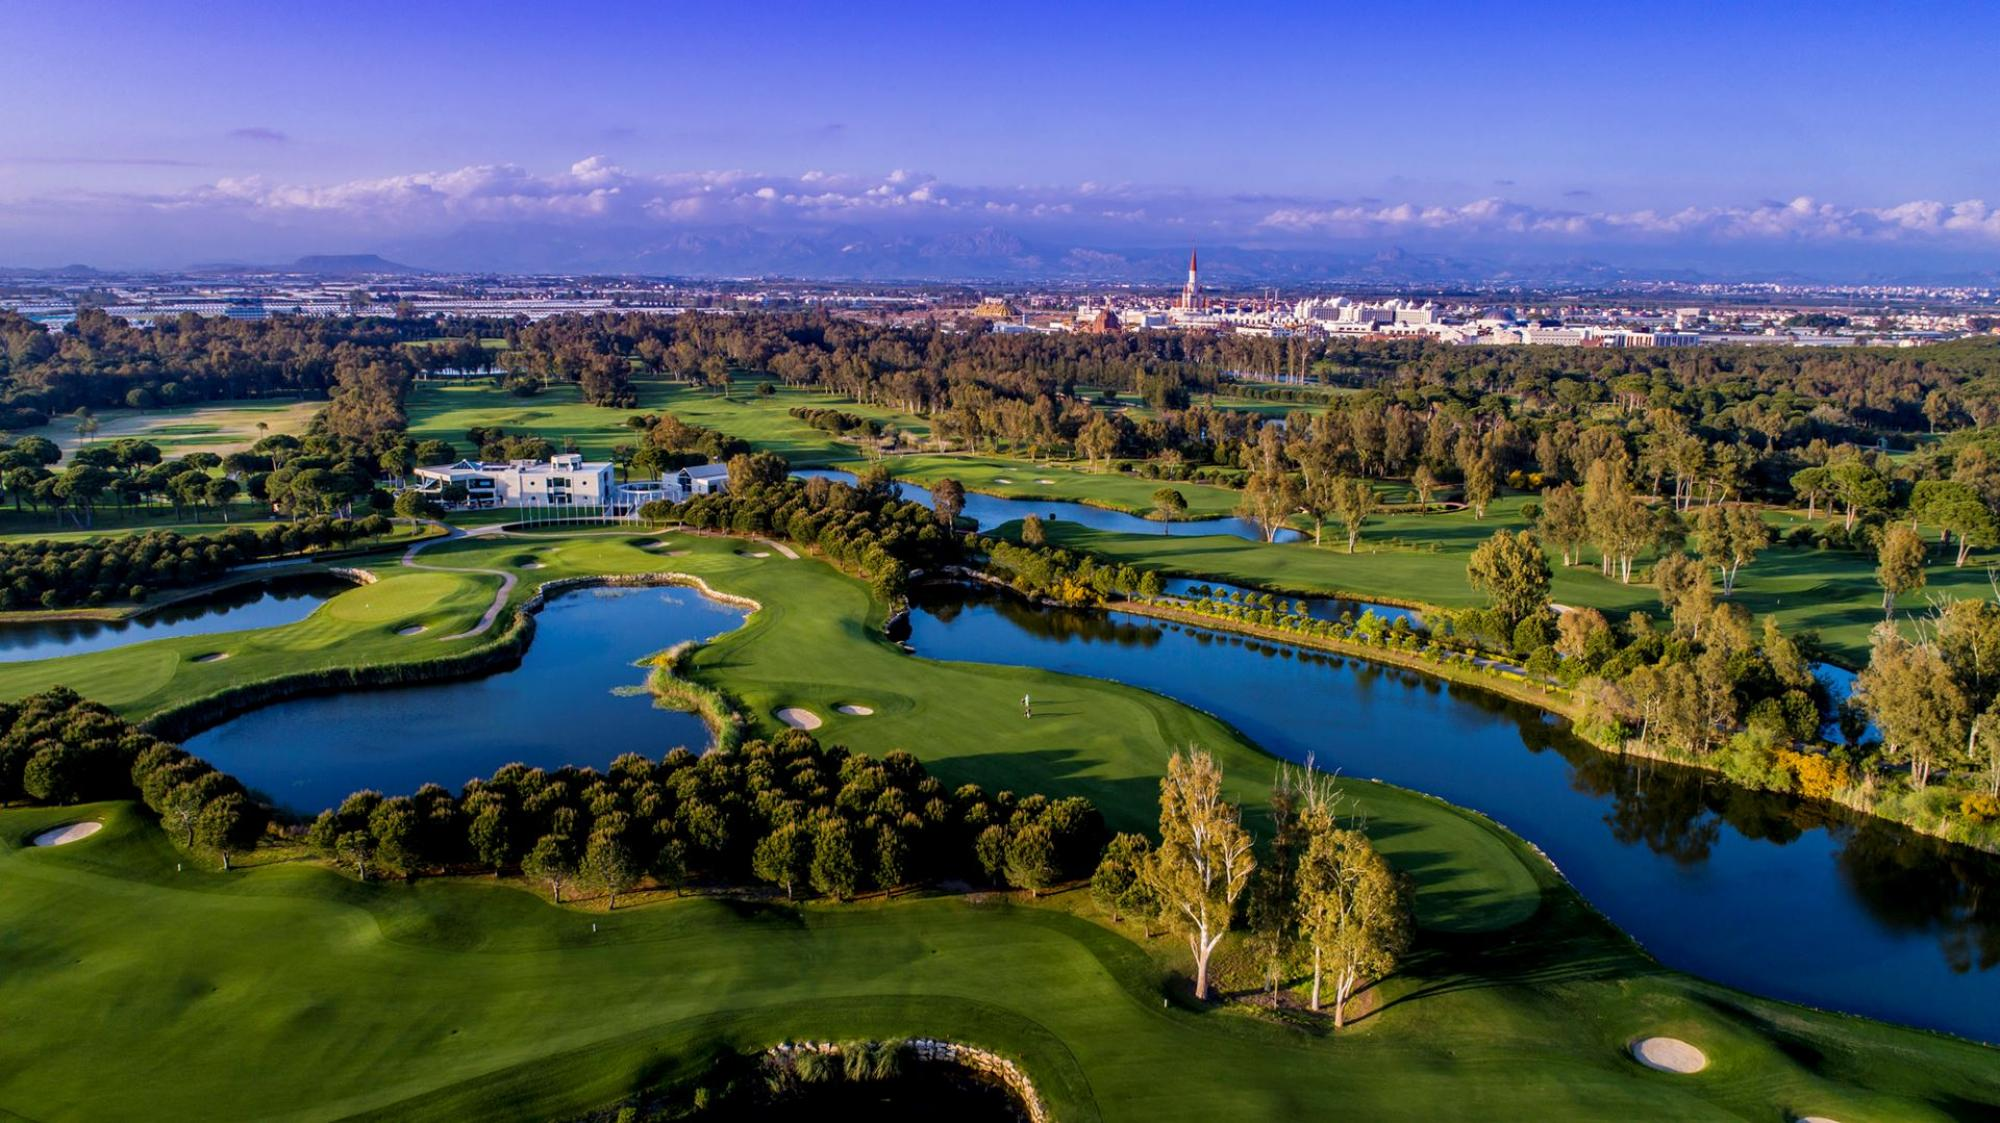 View Antalya Golf Club's picturesque golf course in astounding Belek.